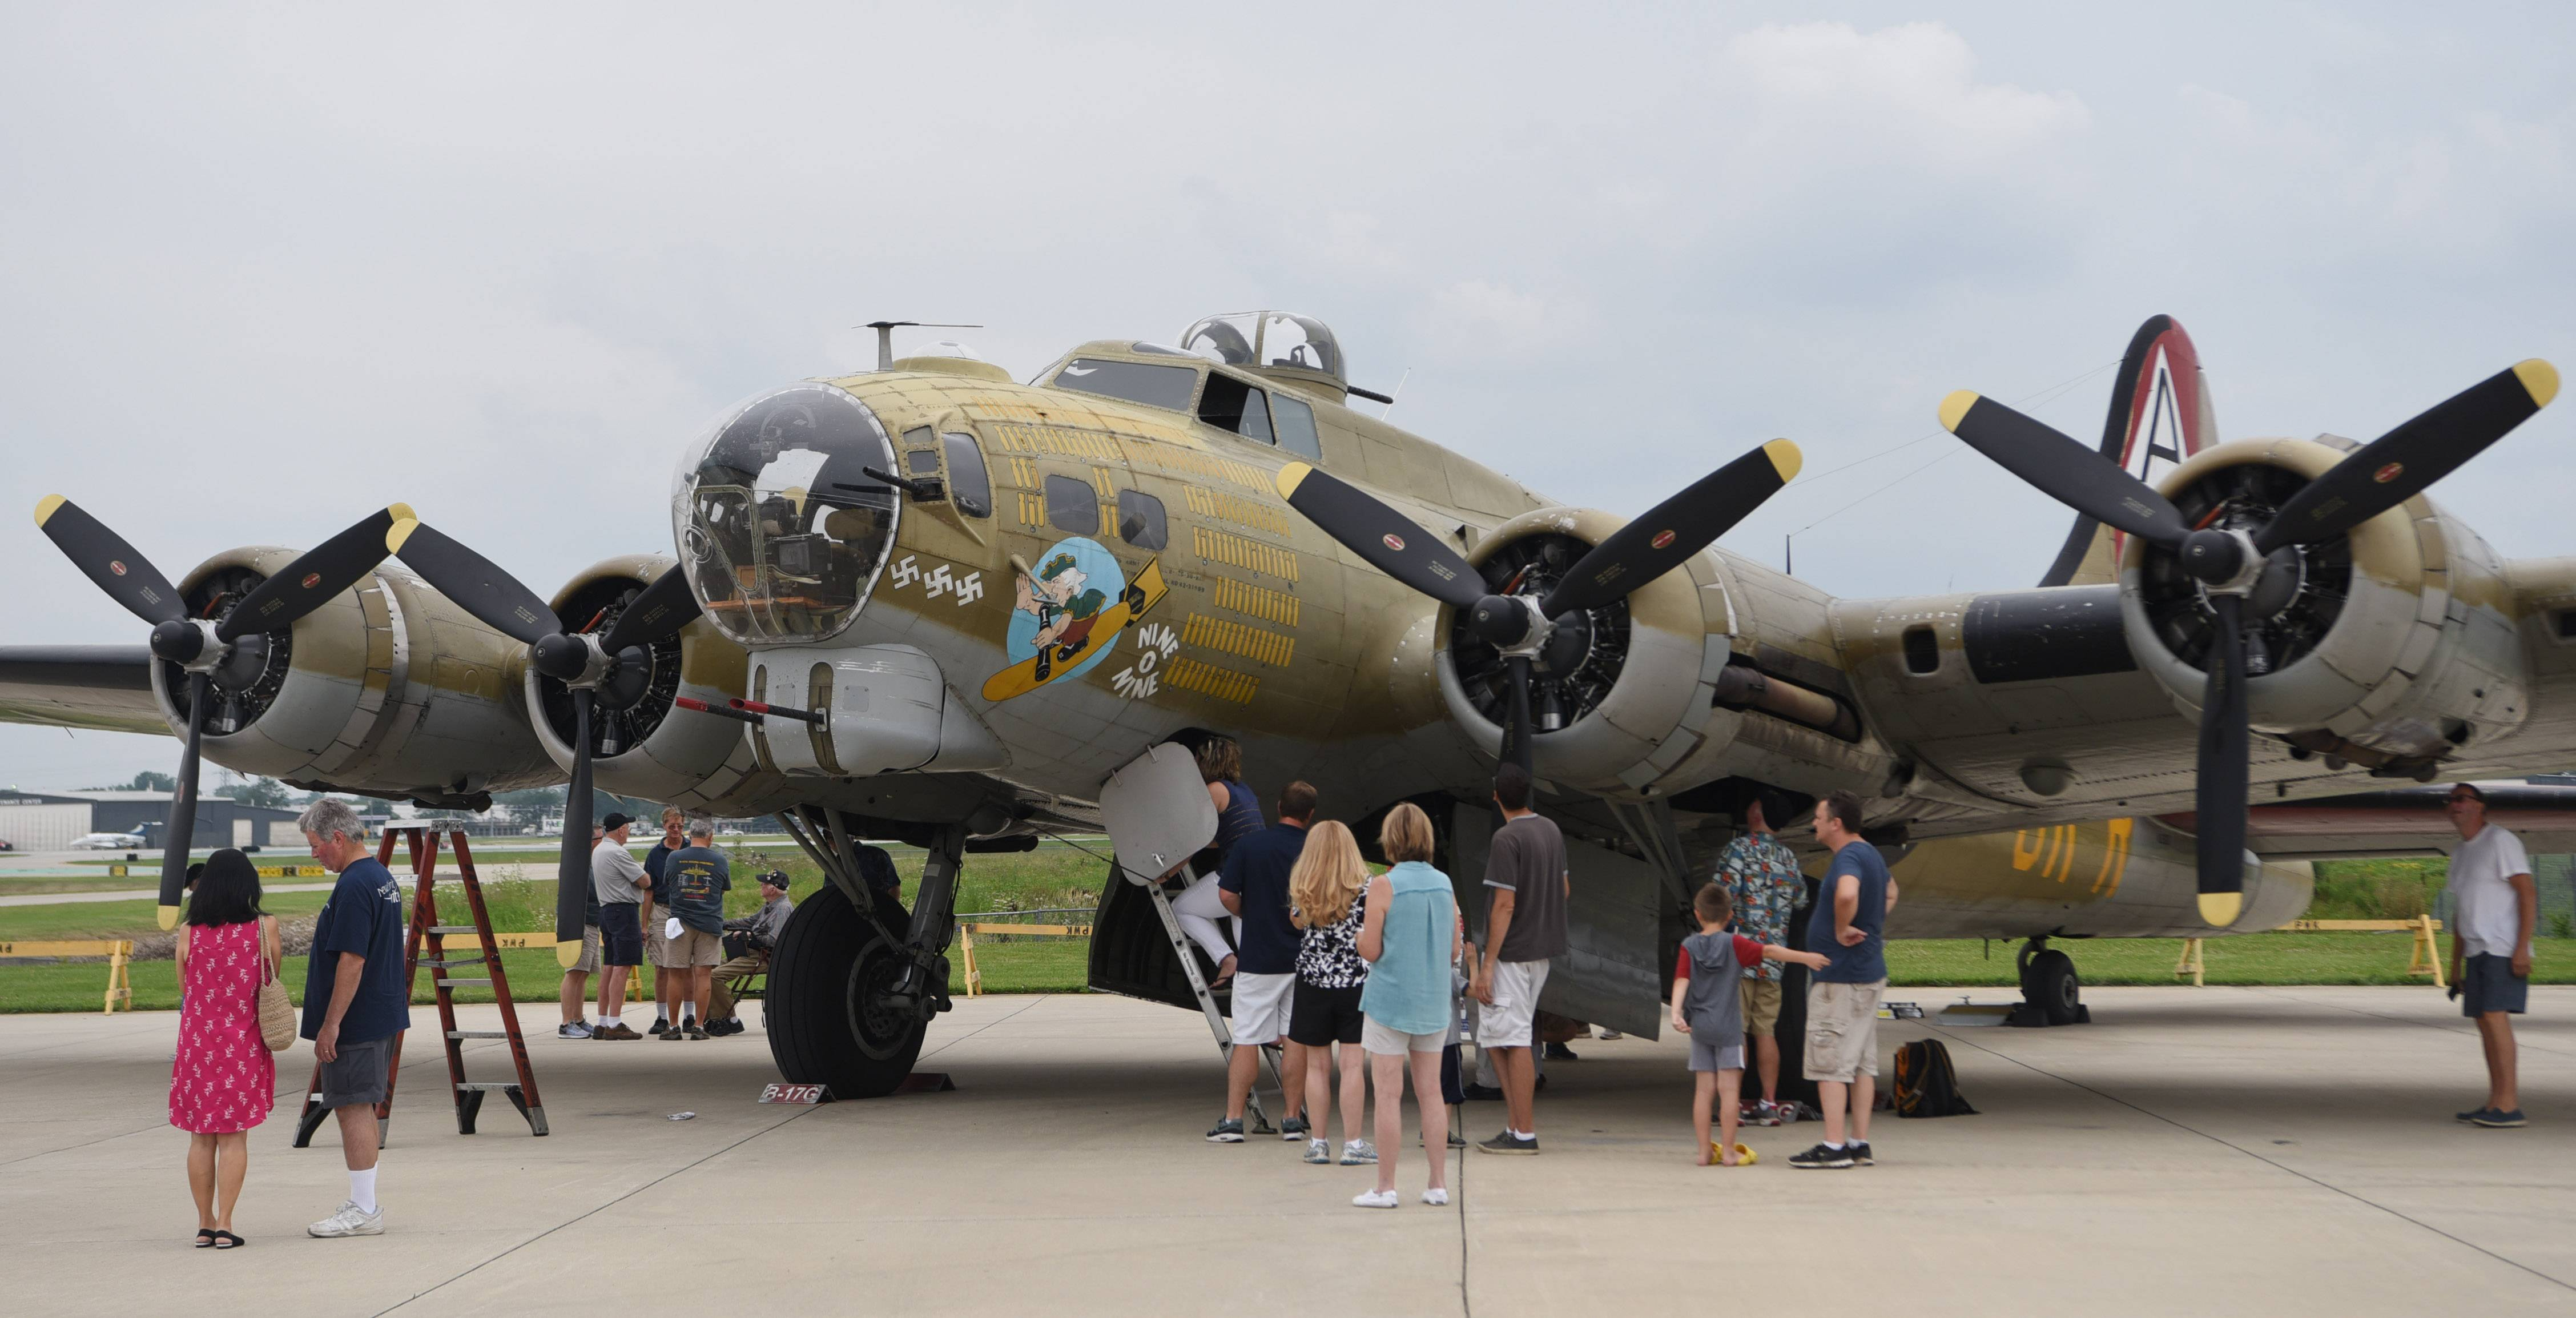 A B-17 Flying Fortress is displayed as part of the Wings of Freedom tour at Chicago Executive Airport in Wheeling through Sunday.